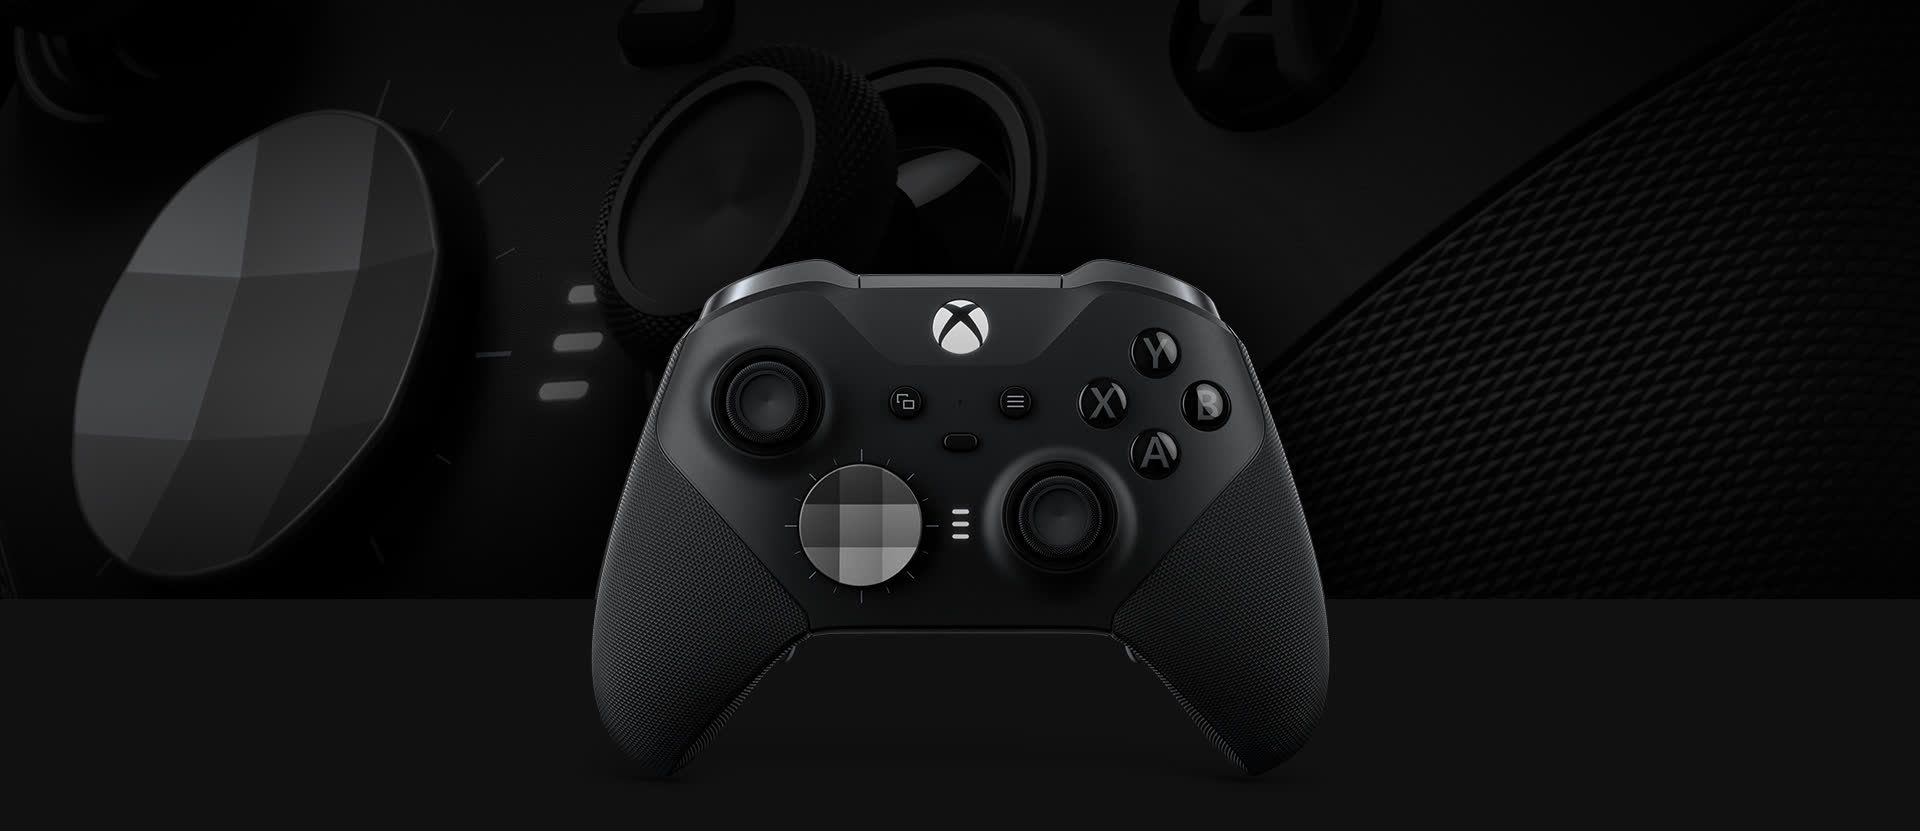 Microsoft extends Xbox Elite 2 controller warranty from 90 days to one year following hardware complaints